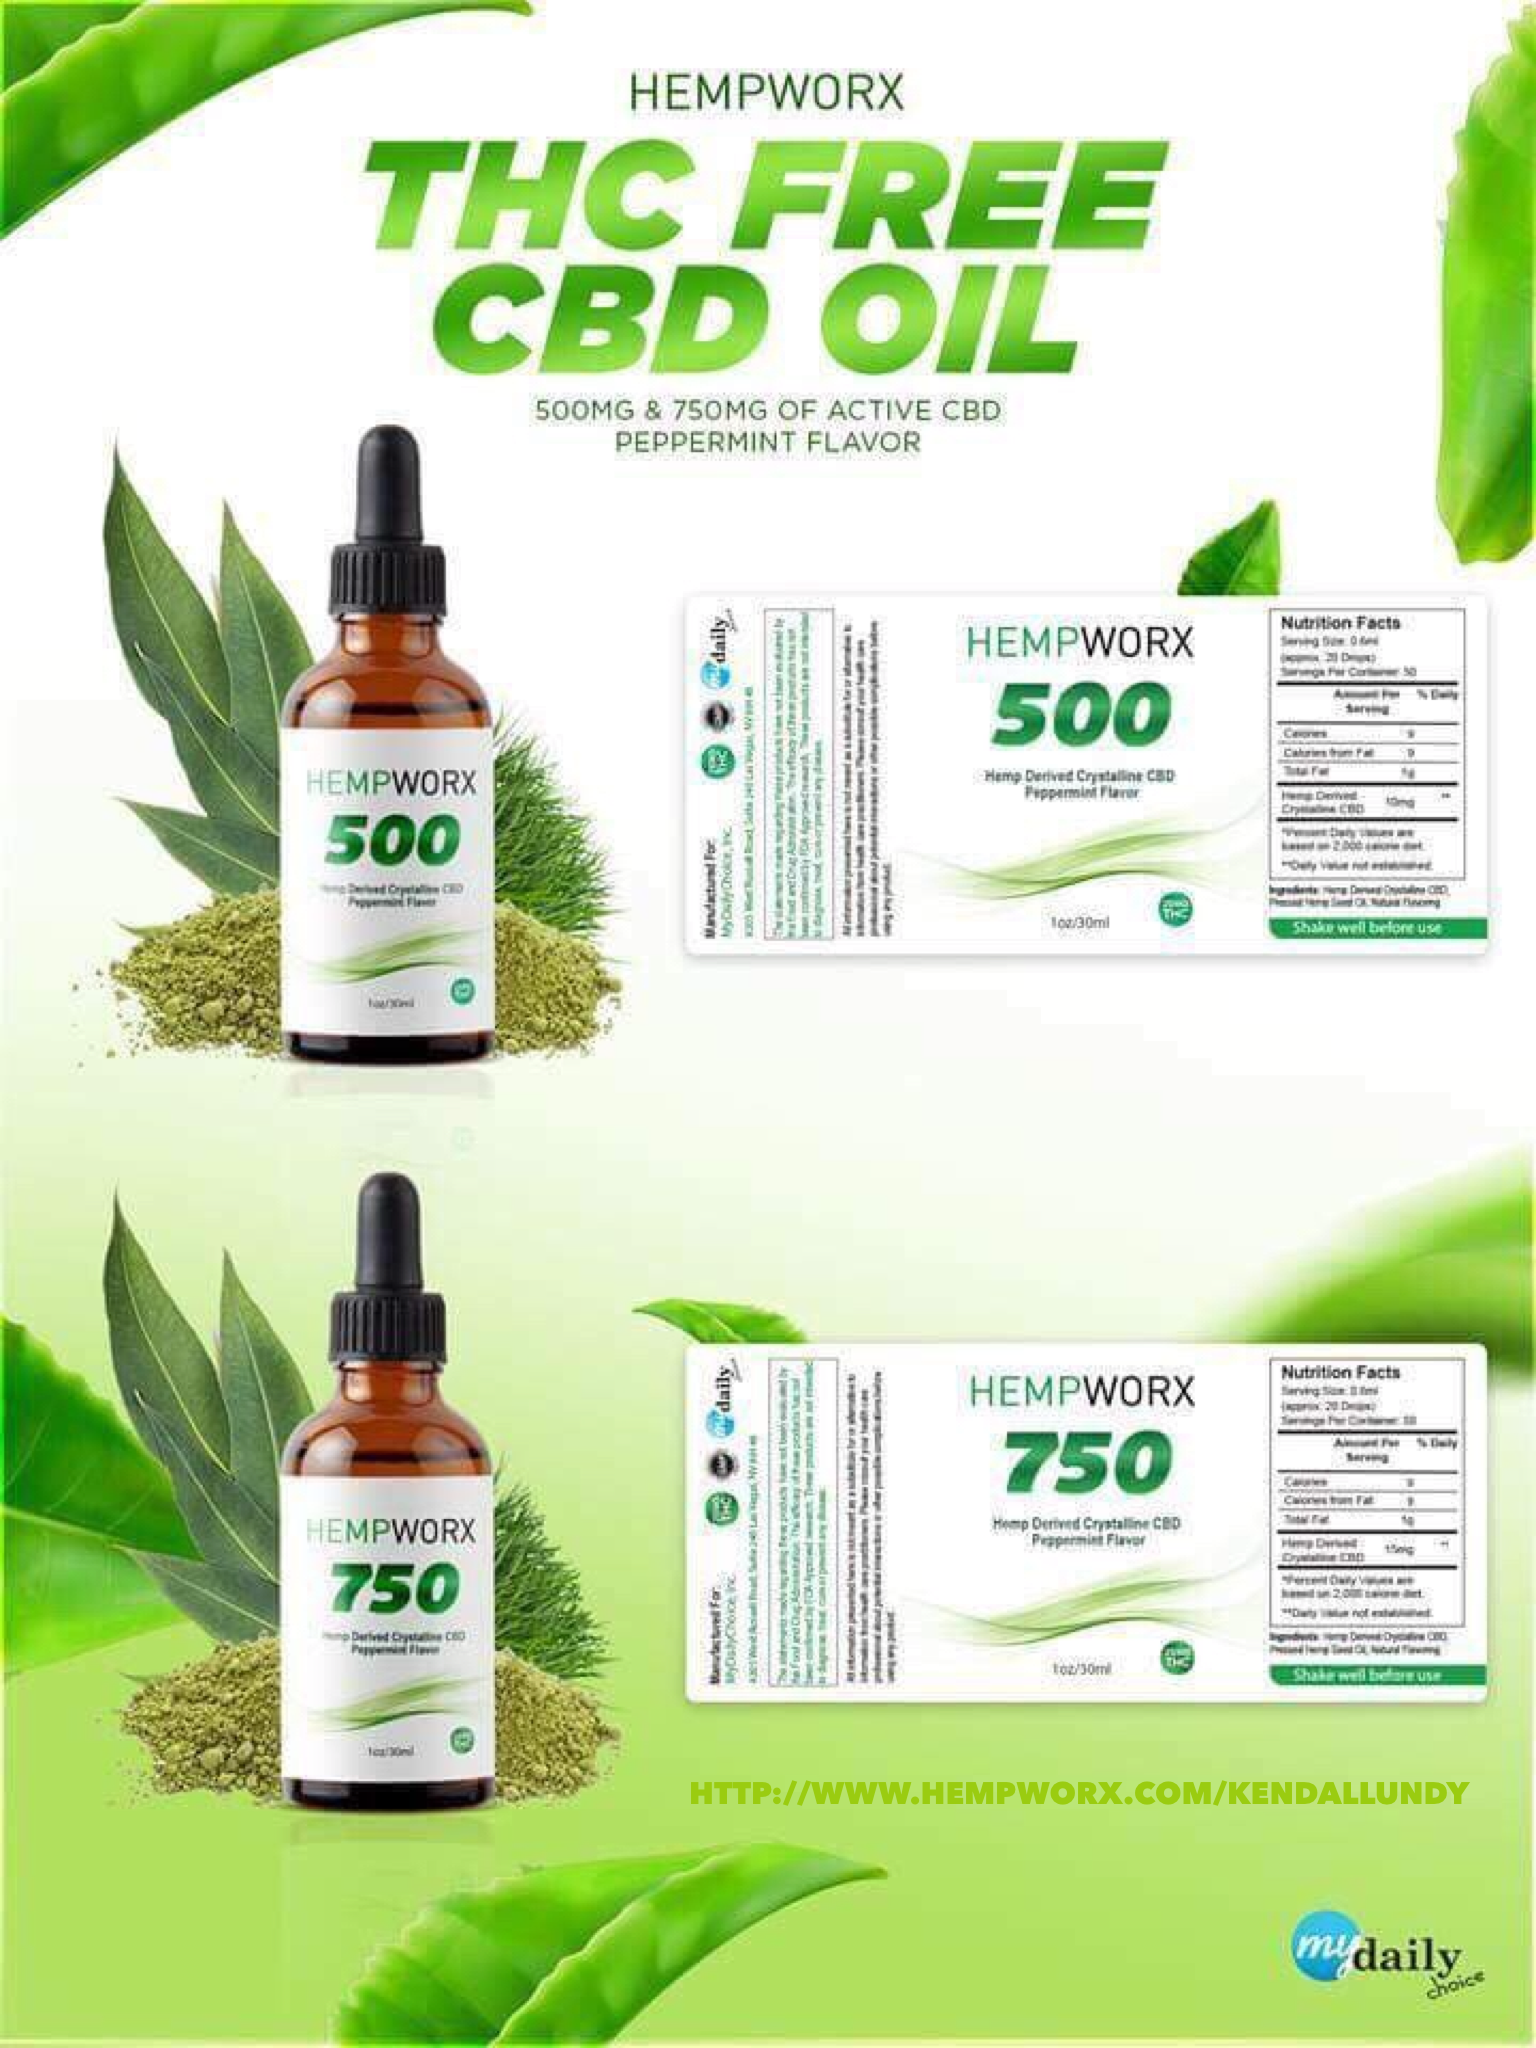 HempWorx just released two NEW products  THC FREE CBD OIL